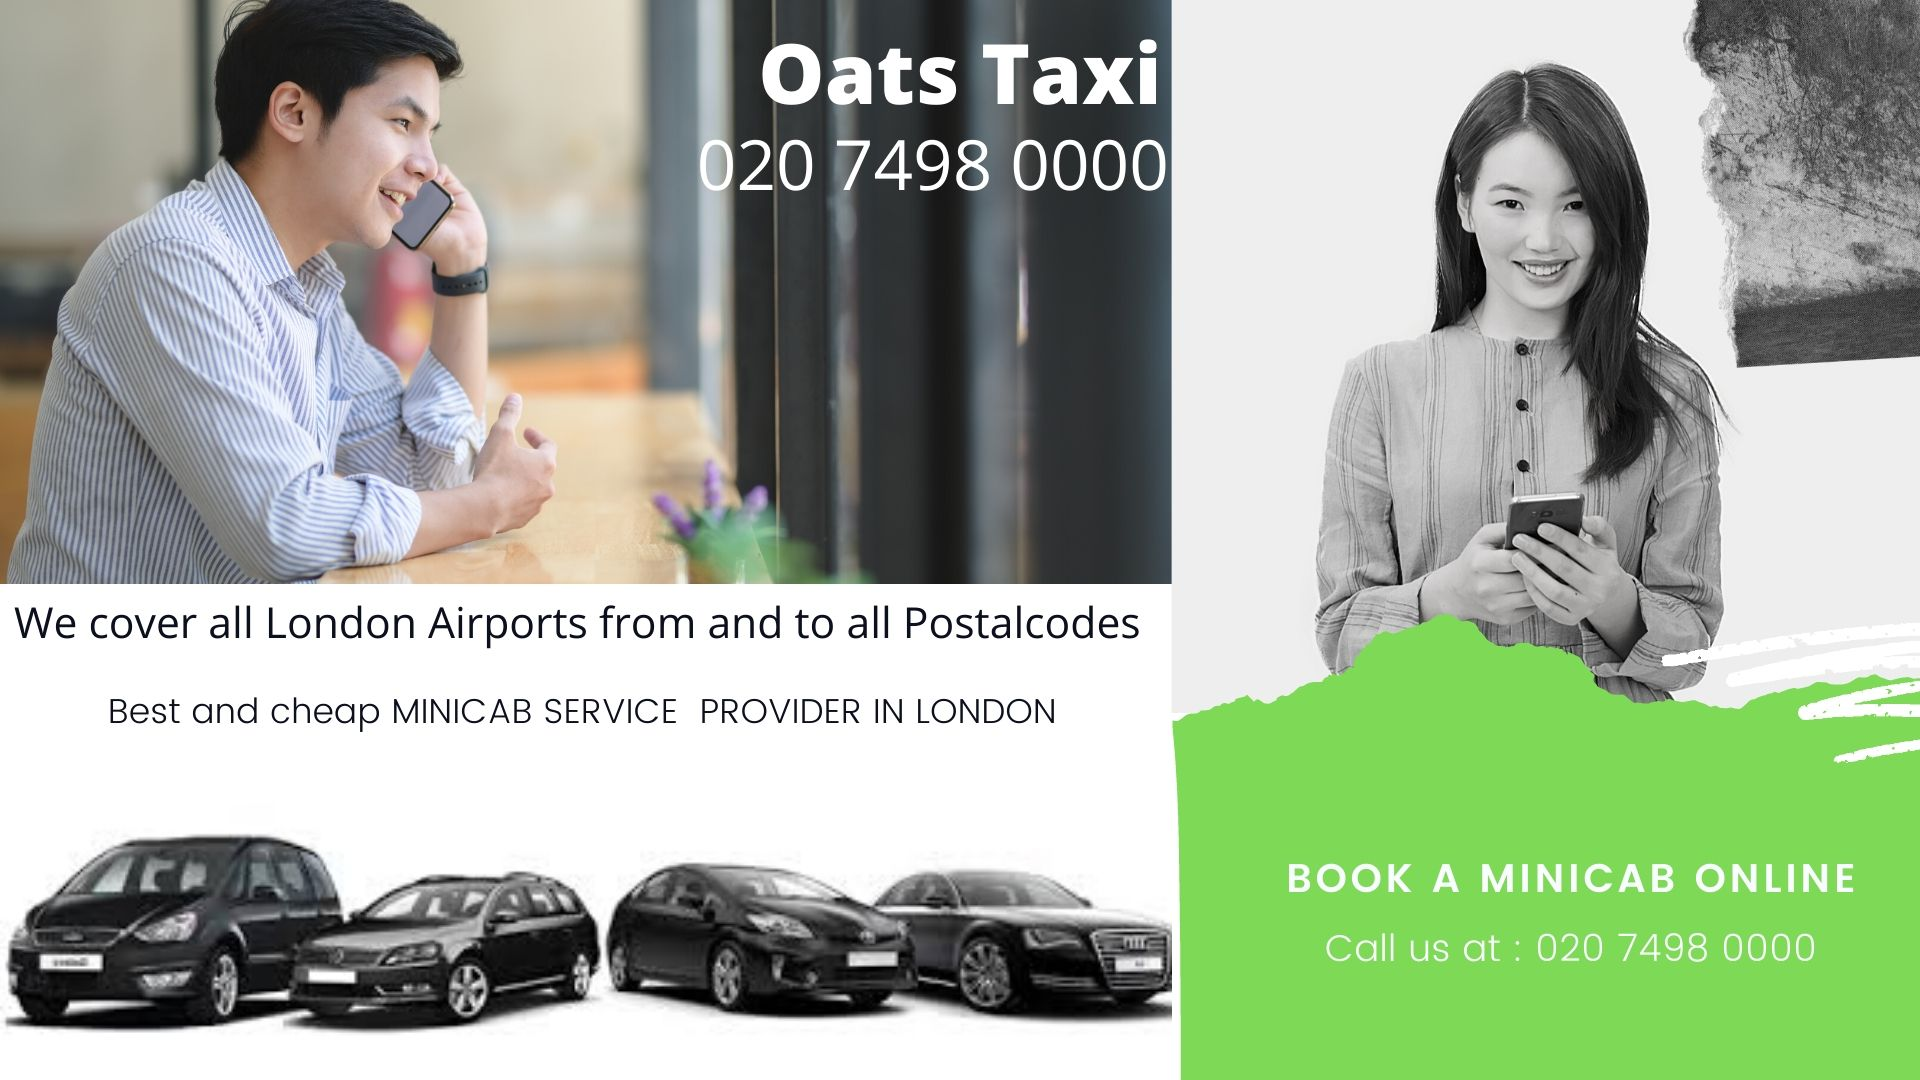 Minicab Office Near LEATHWAITE ROAD, Battersea SW11, Minicab From Battersea SW11 To Gatwick Airport